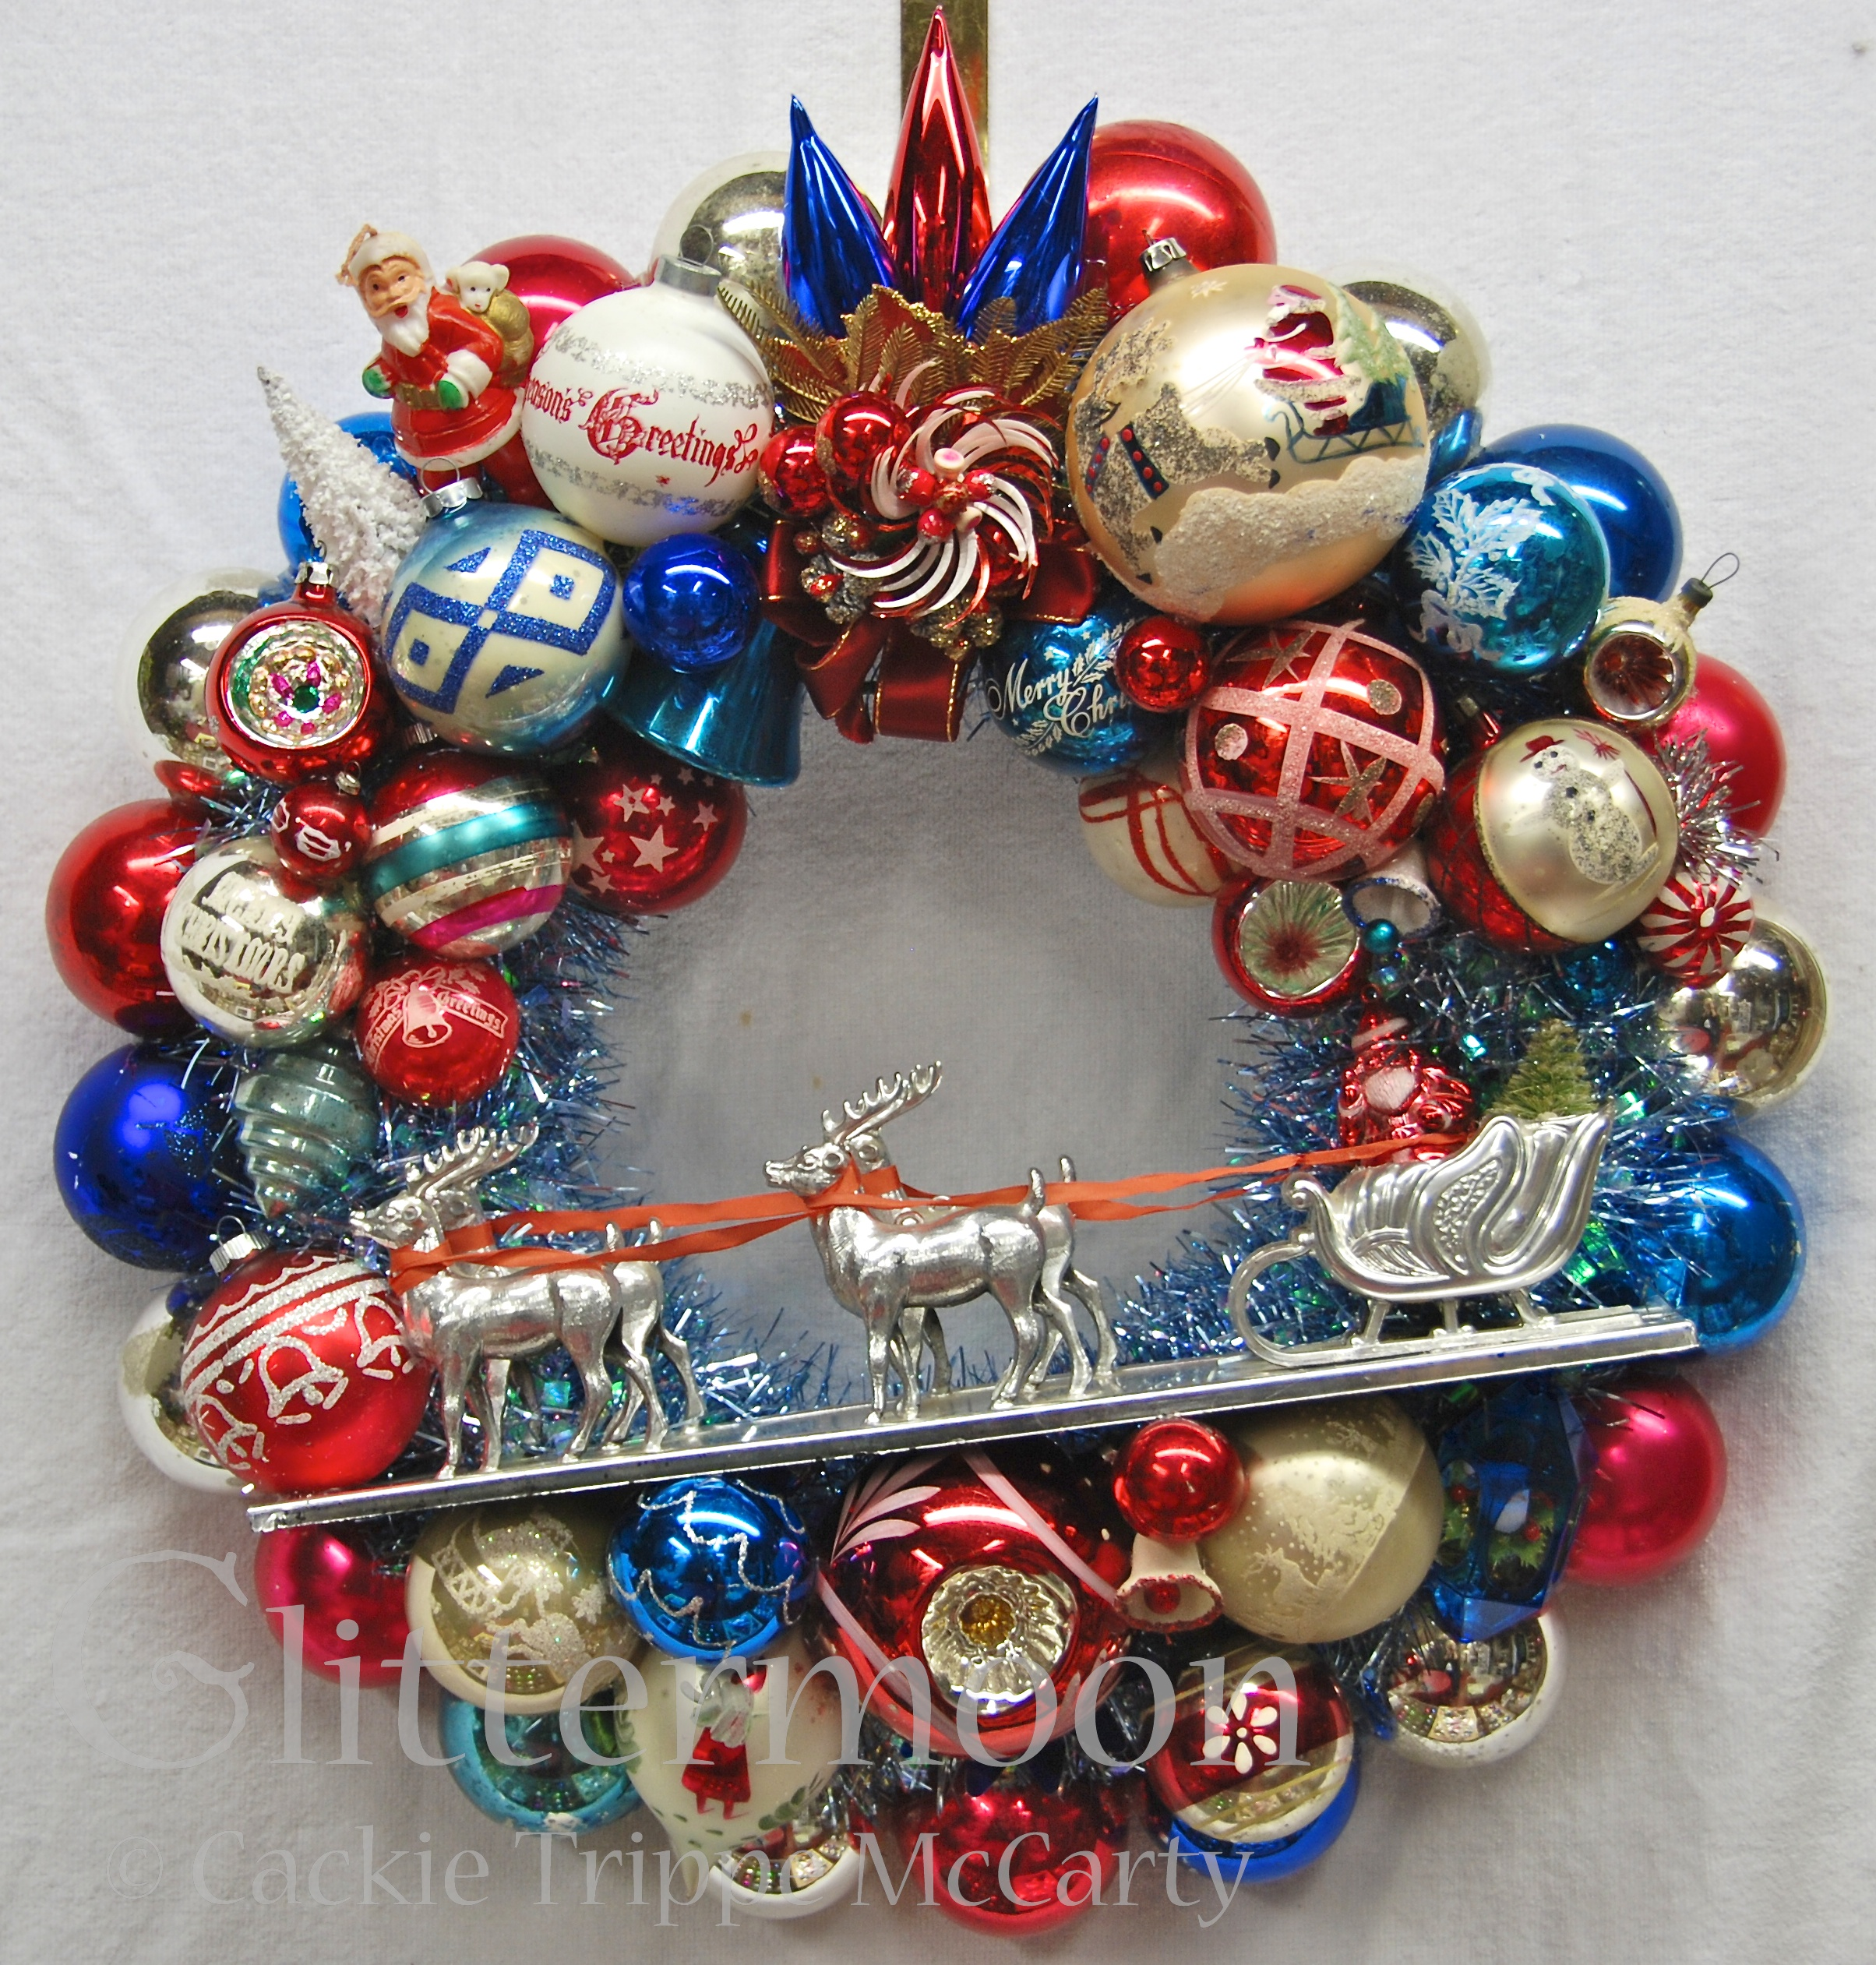 Red white and blue christmas ornaments -  2408 2522 In 2012 Designs Cheers For The Red White Blue